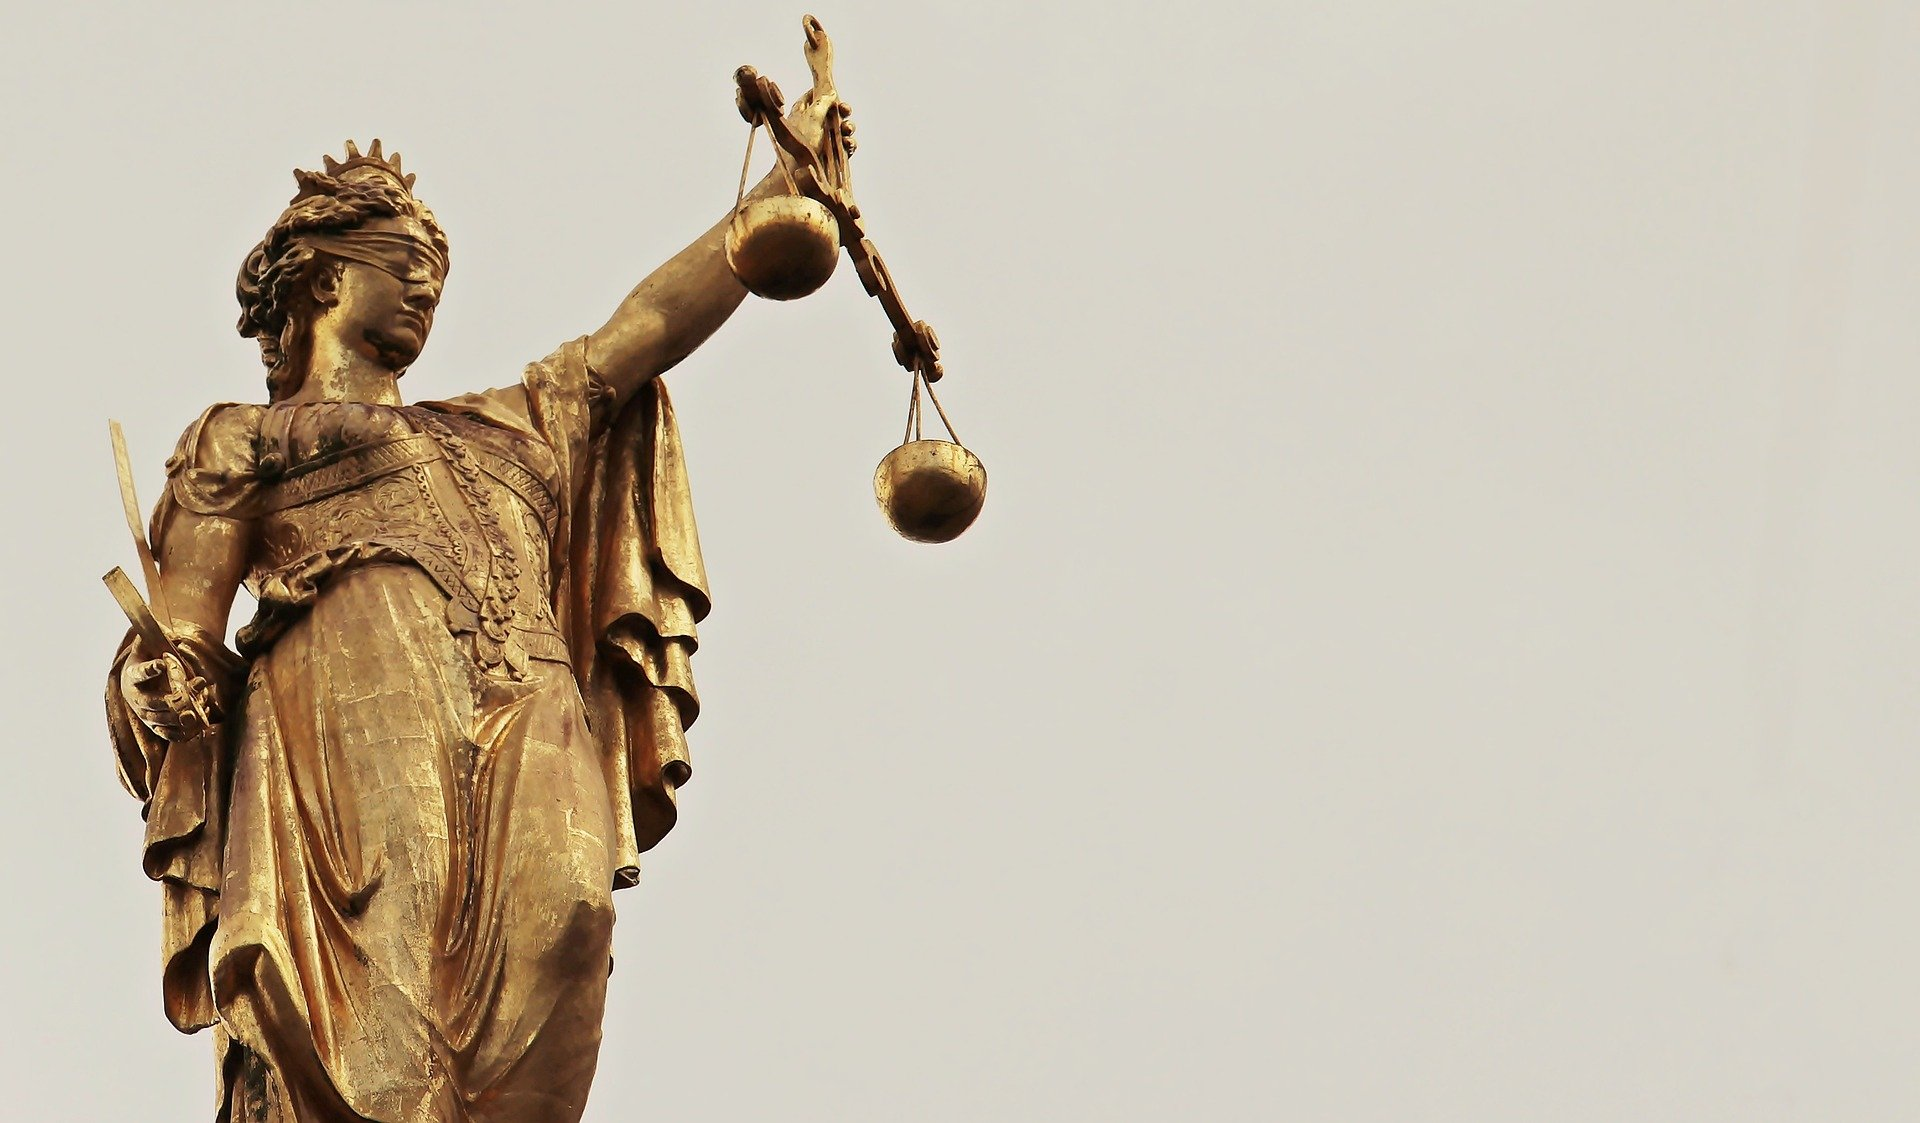 Image of Justitia goddess/Lady Justice